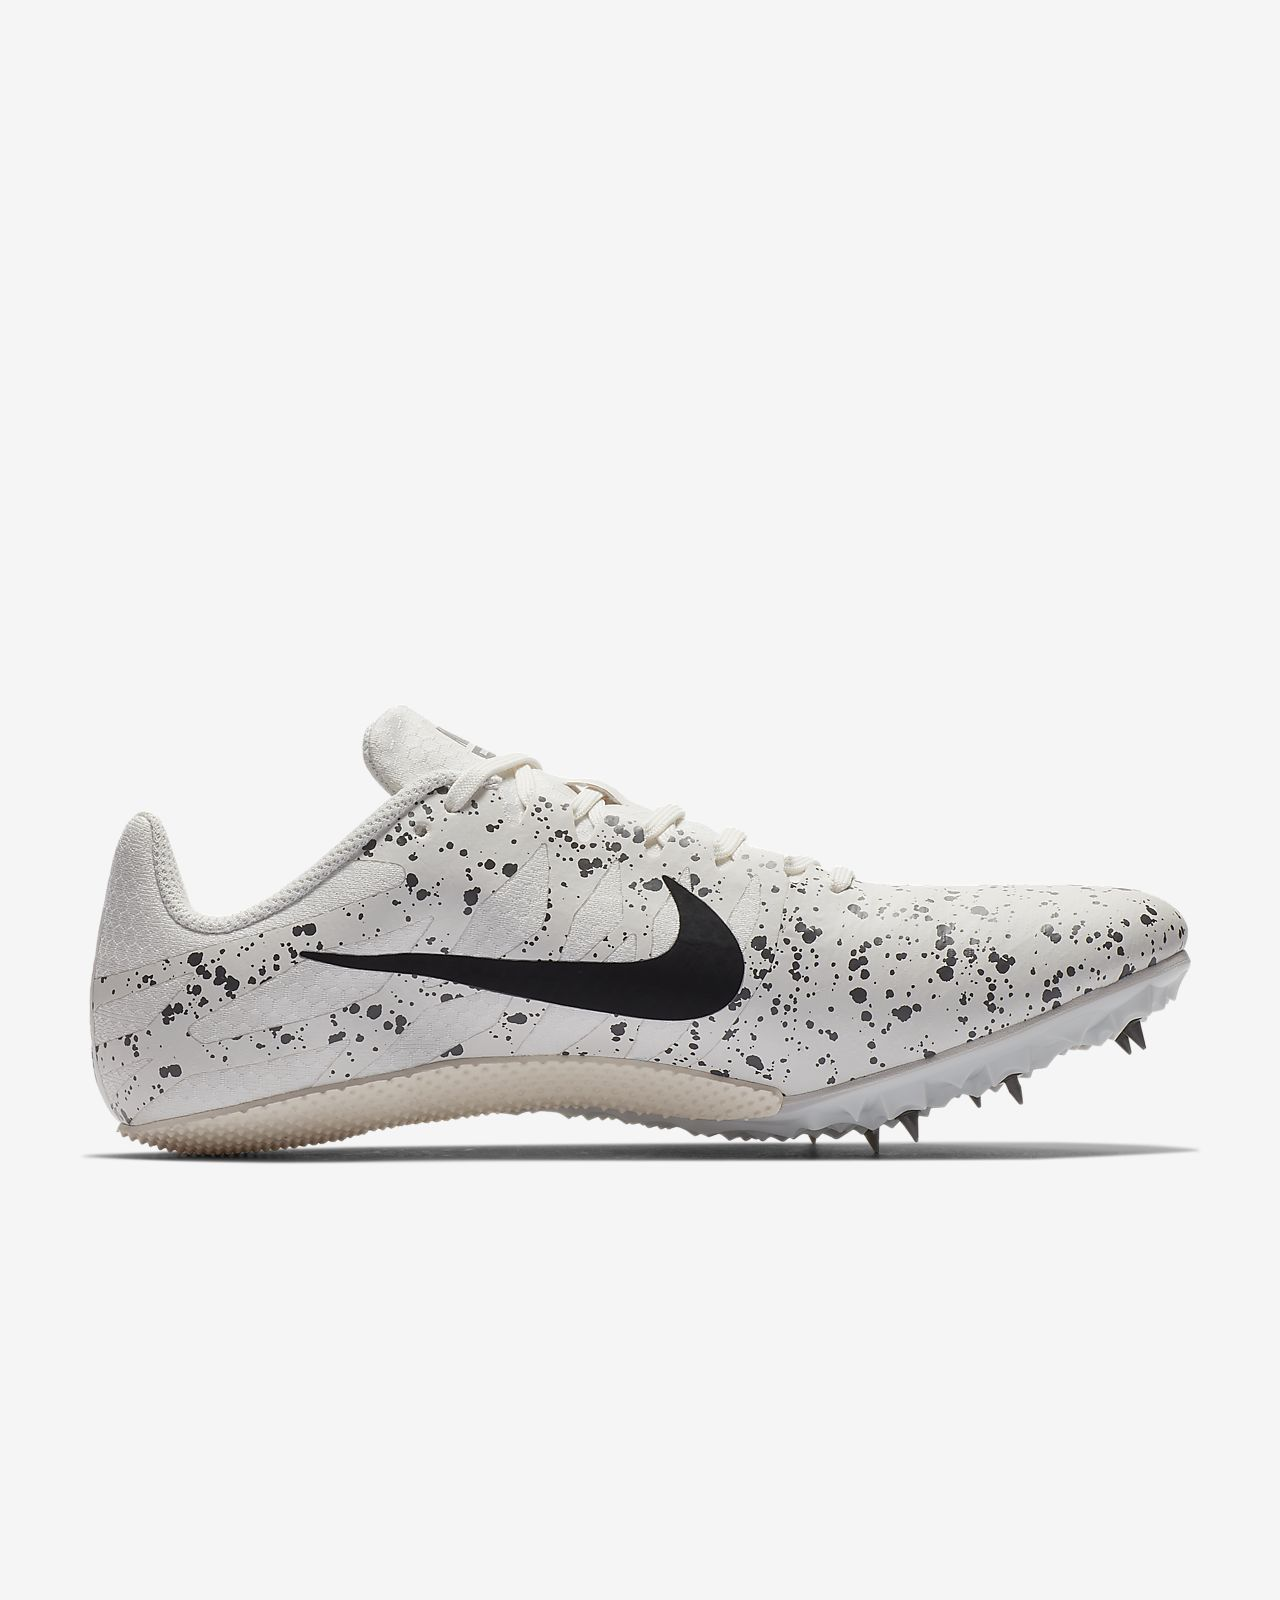 info for fae5b c5f5b ... Nike Zoom Rival S 9 Unisex Track Spike